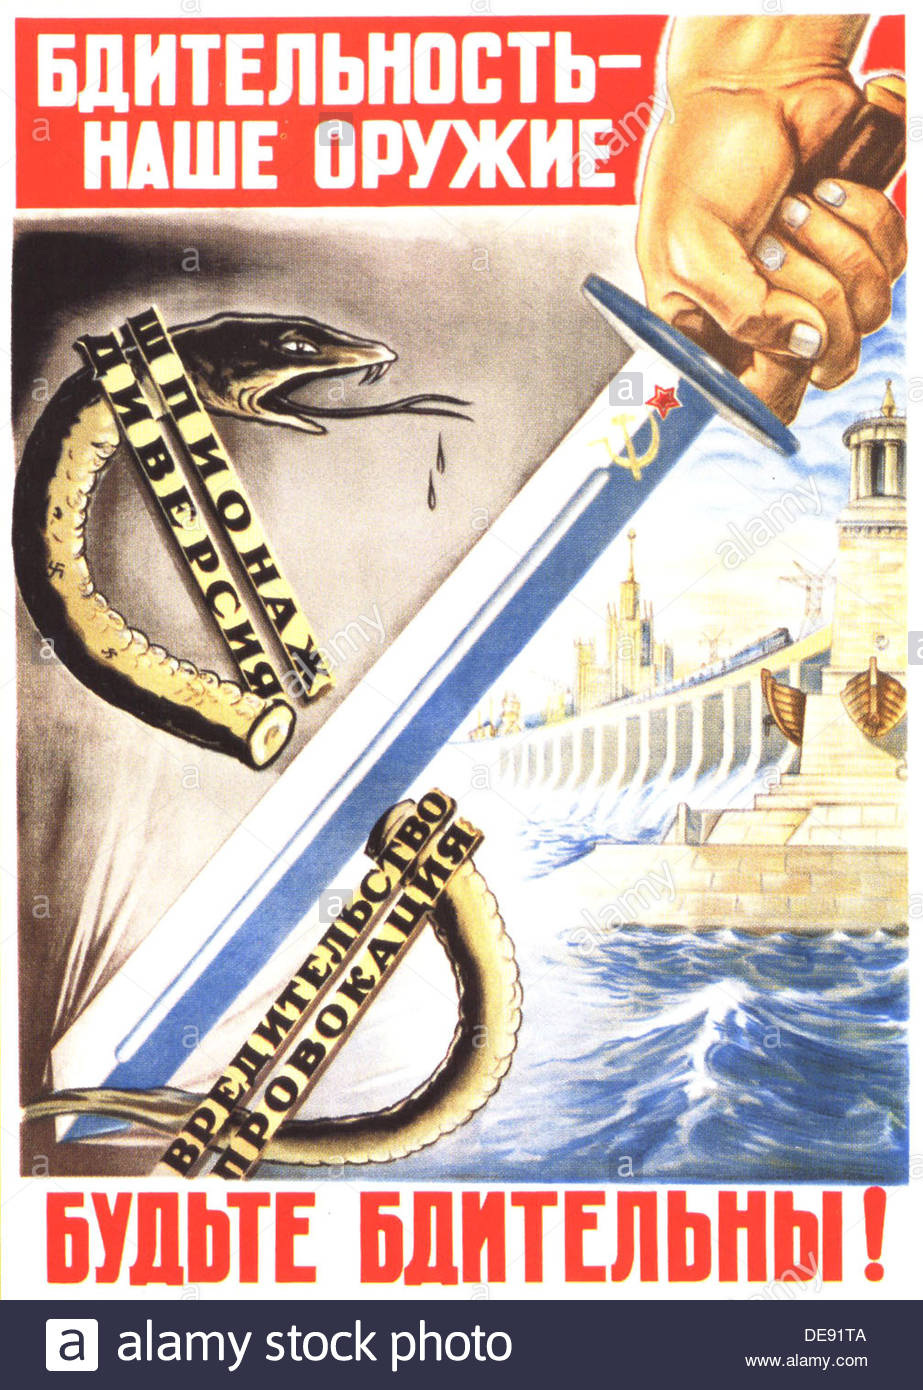 Vigilance is our weapon. Be vigilant! (Poster), 1953. Artist: Shirokograd, B. - Stock Image